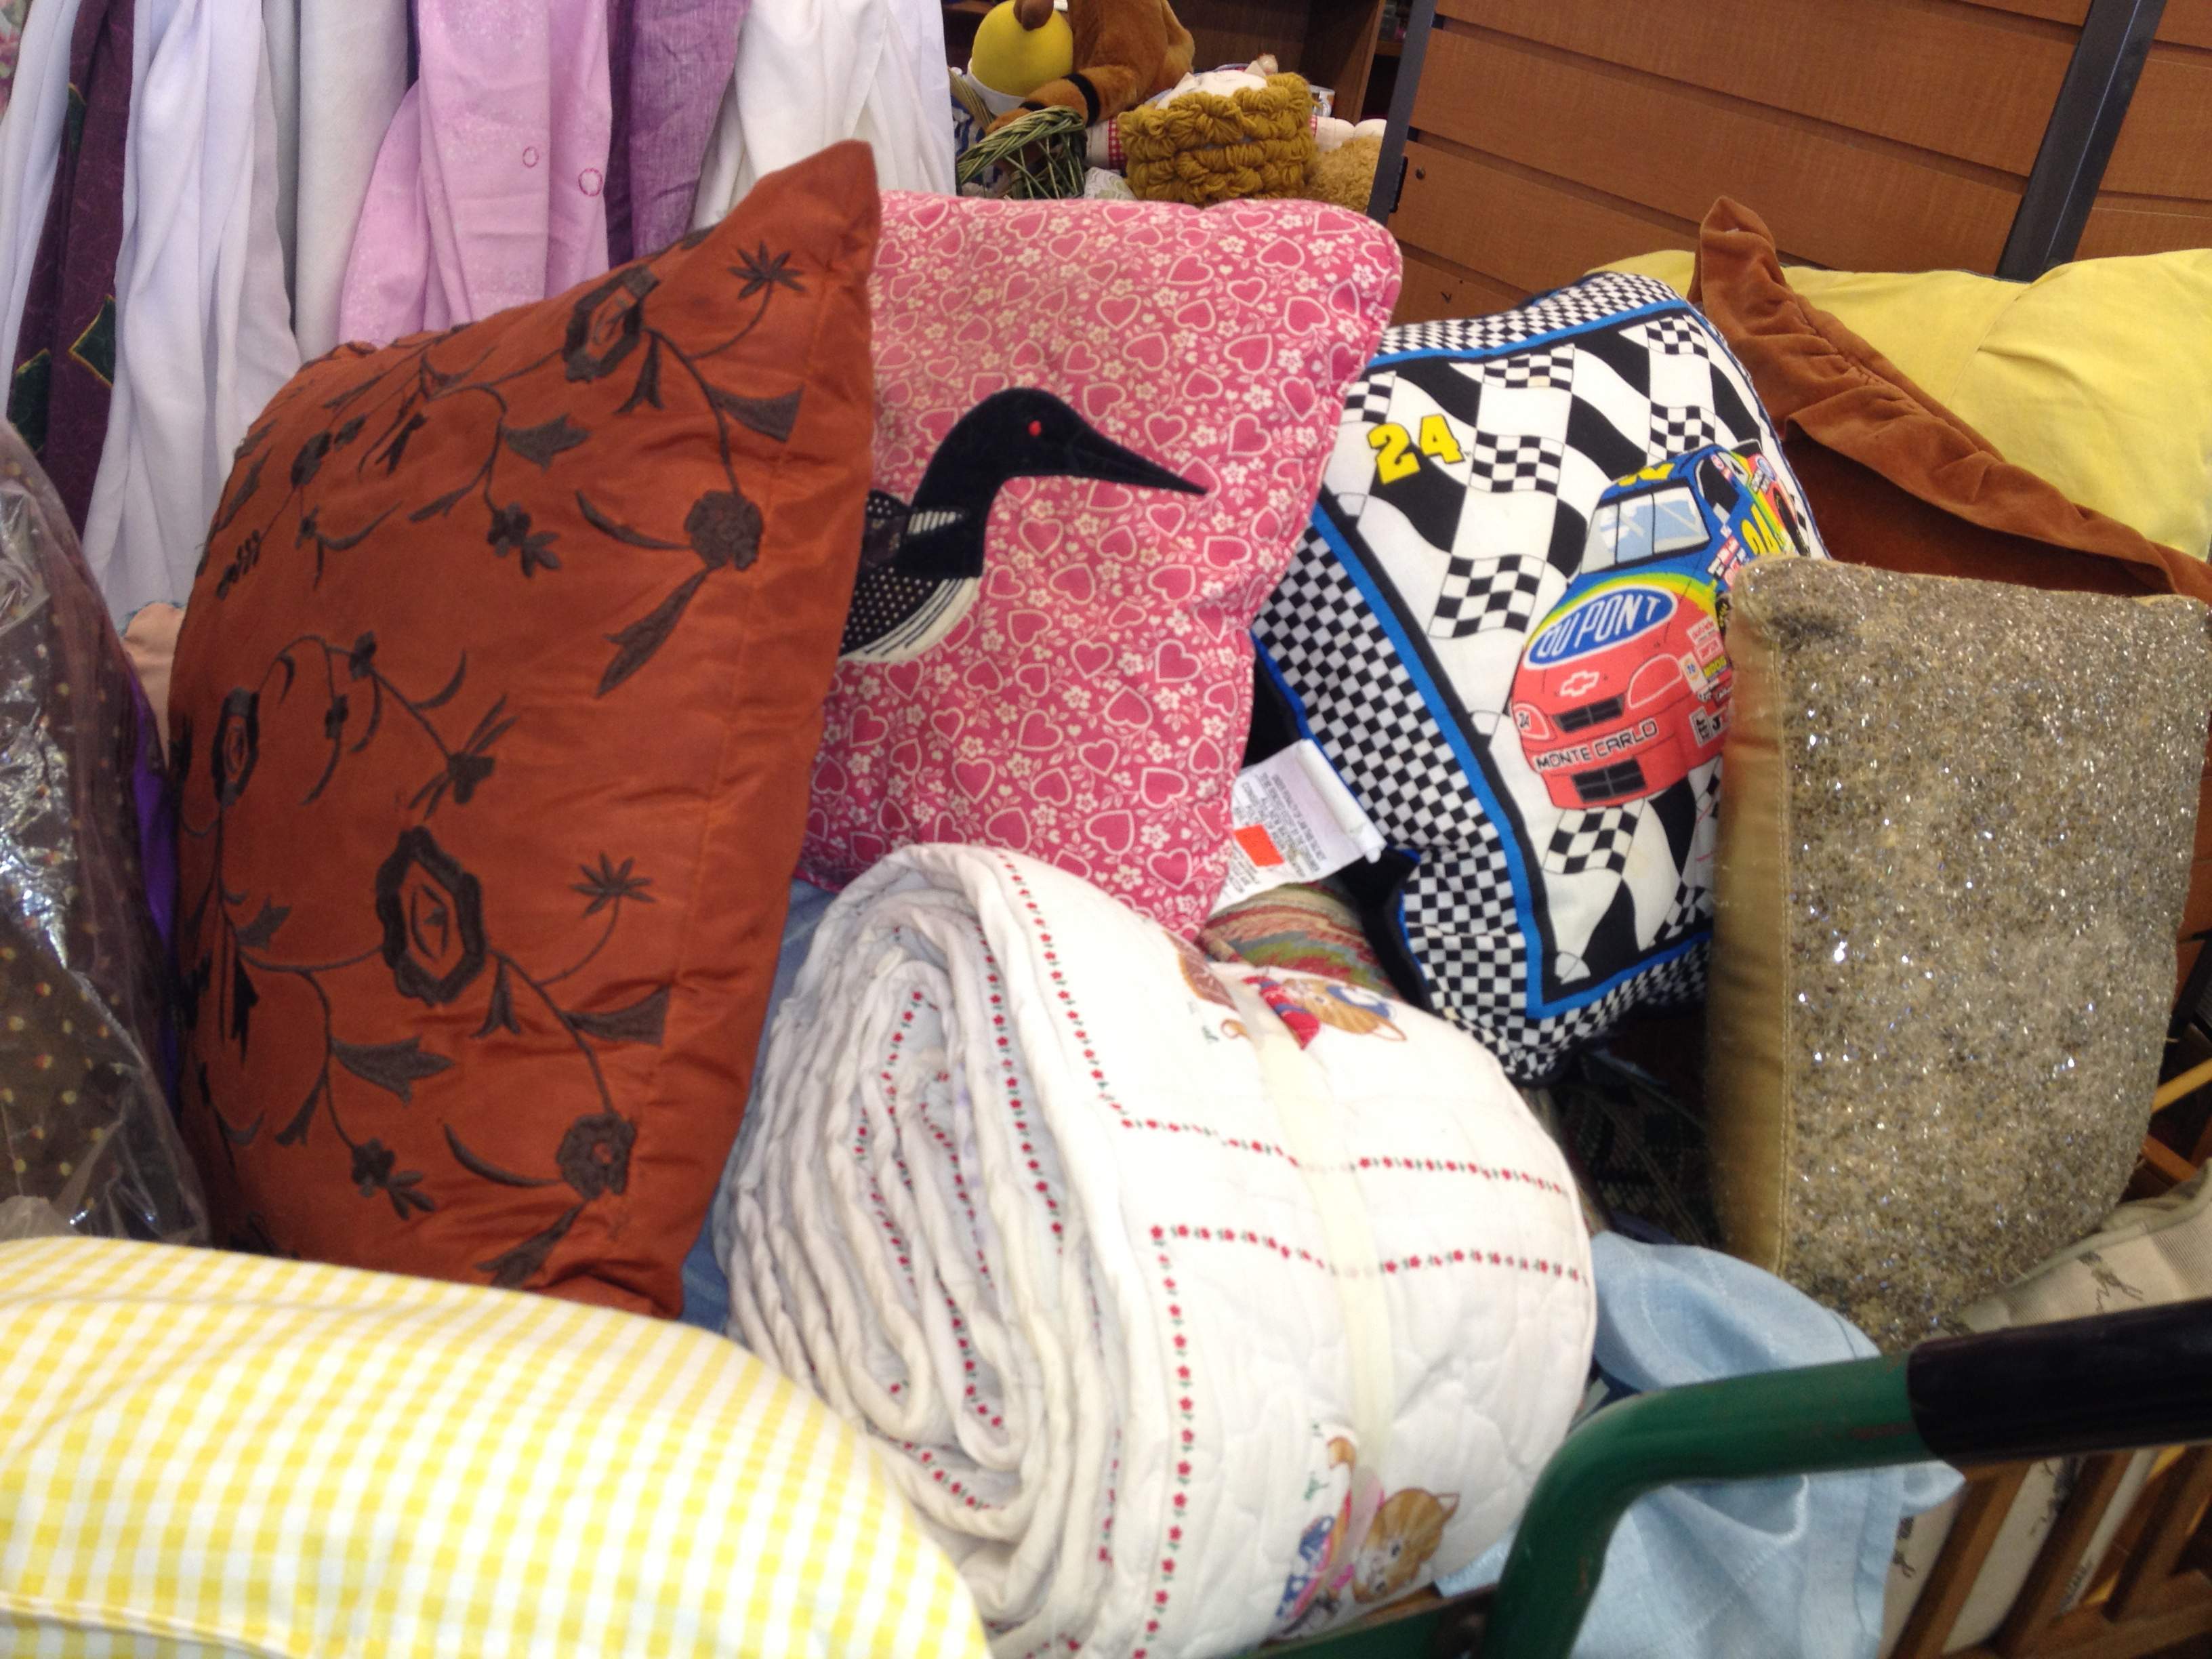 Pillows - ReTail Thrift Store - Charleston, SC